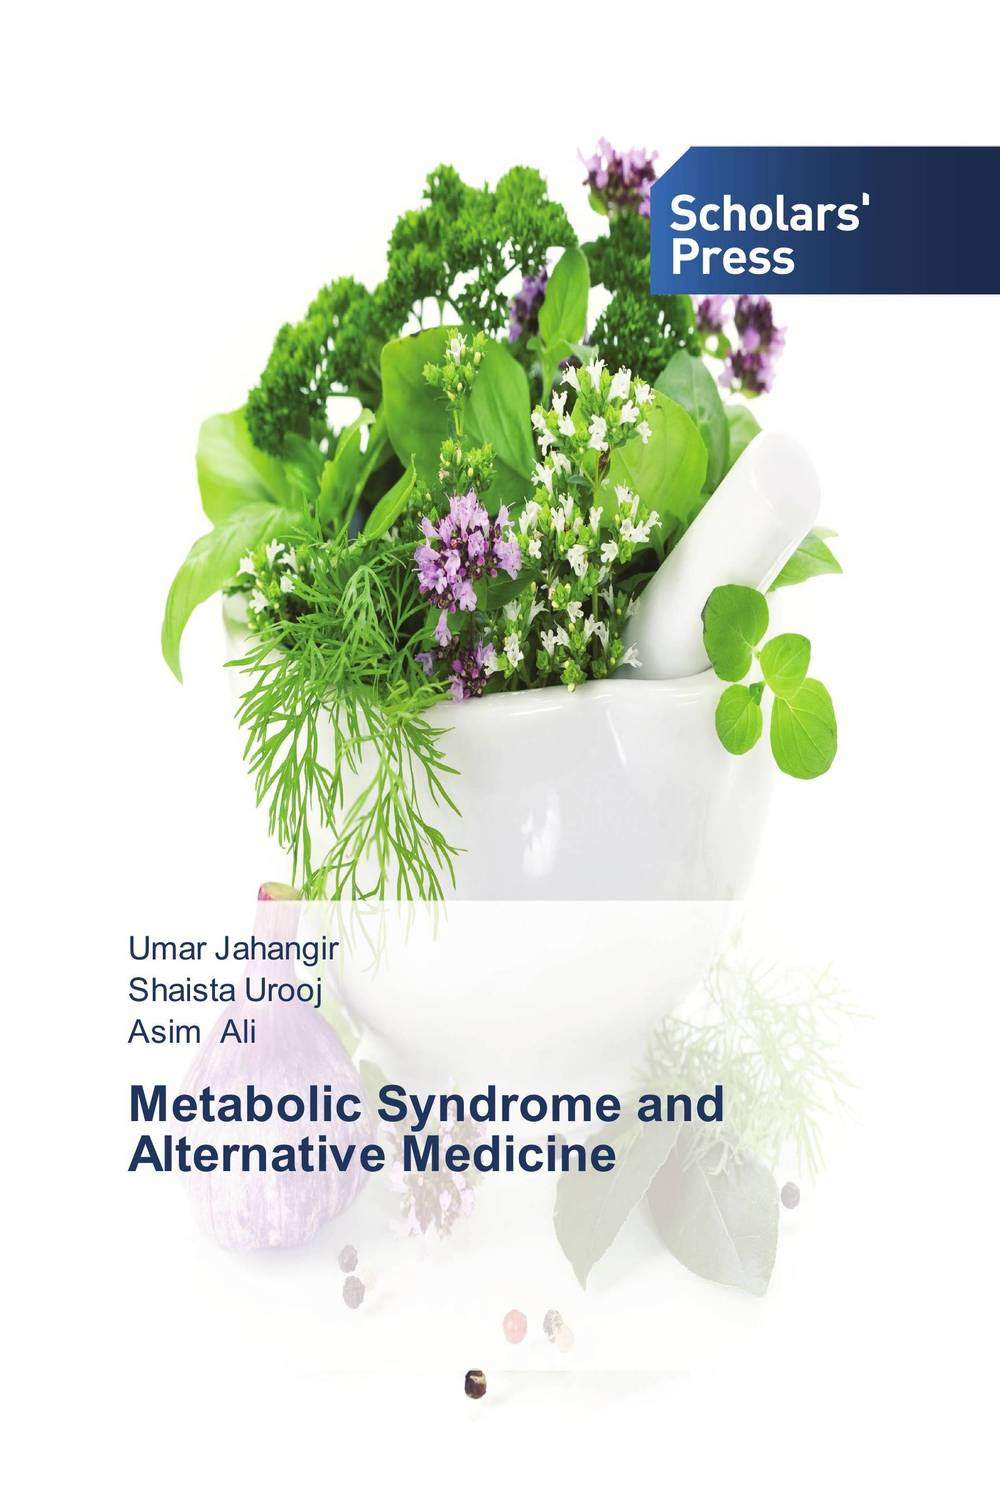 Metabolic Syndrome and Alternative Medicine metabolic syndrome its association with different lifestyles